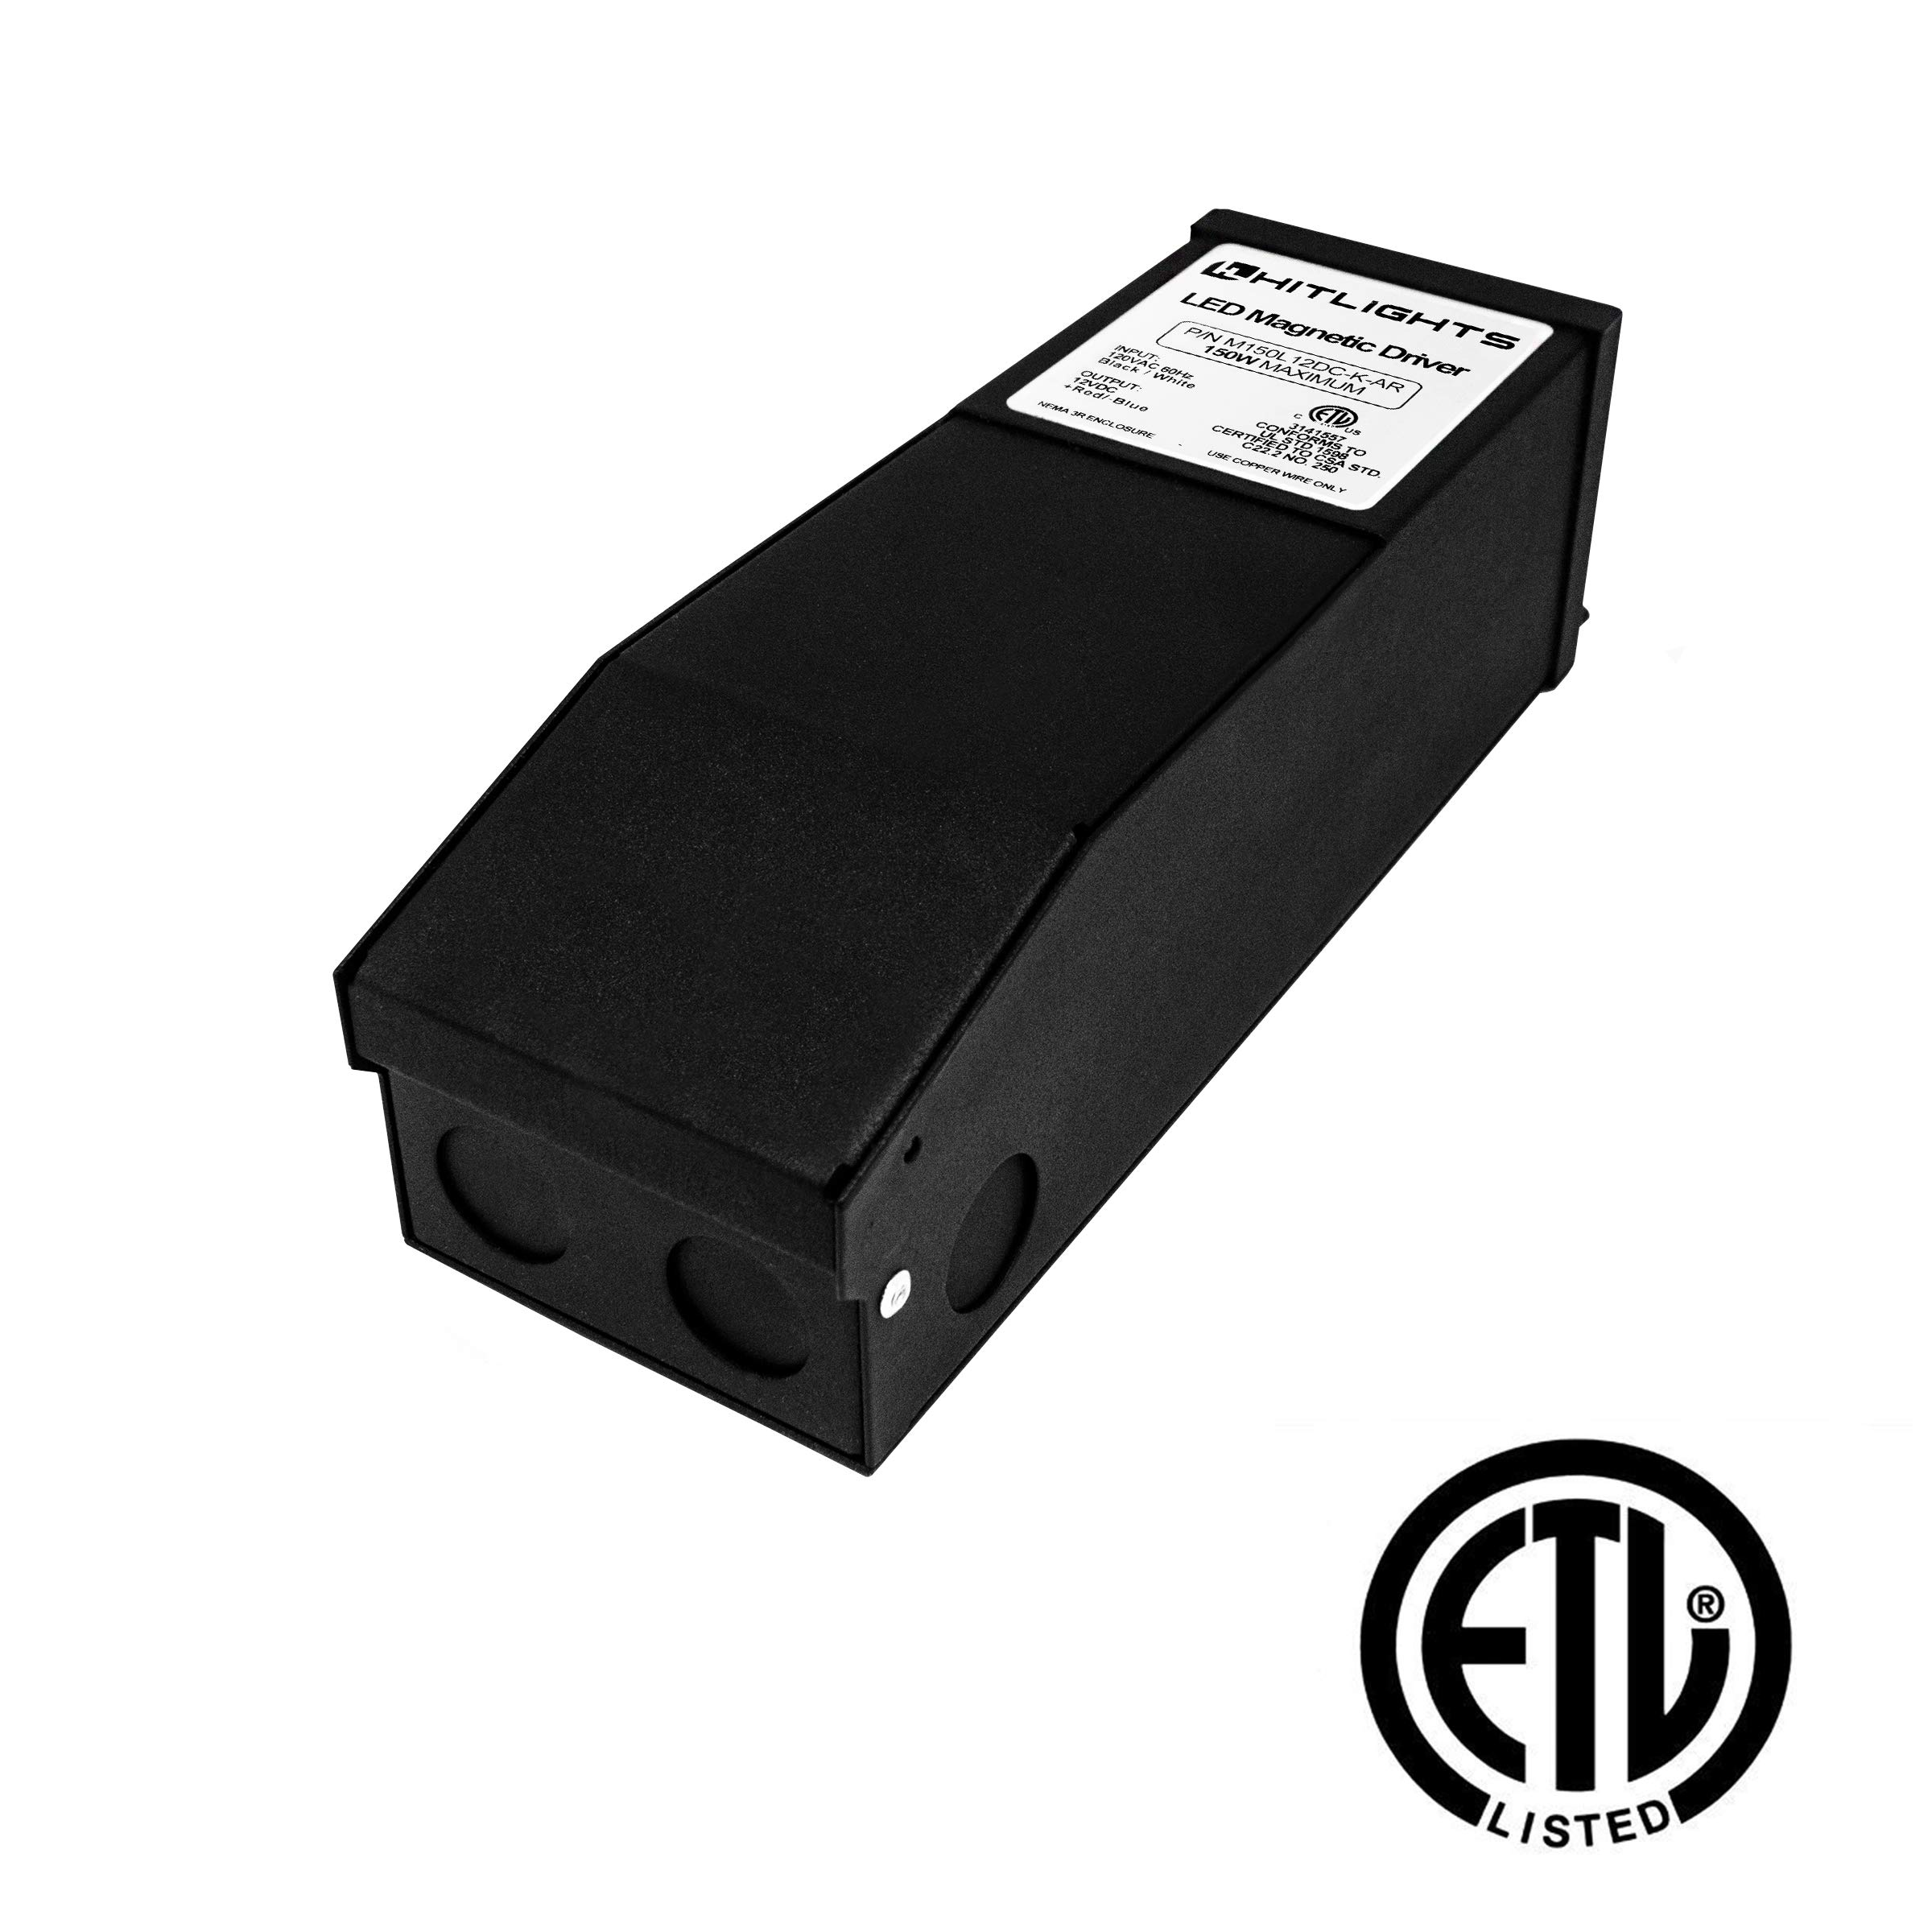 Magnetic 150 Watt Dimmable Driver, Magnetic LED Transformer - 110V AC-12V DC Transformer. Made in the USA. Compatible with Lutron and Leviton for LED Strip Lights, Constant Voltage LED Products